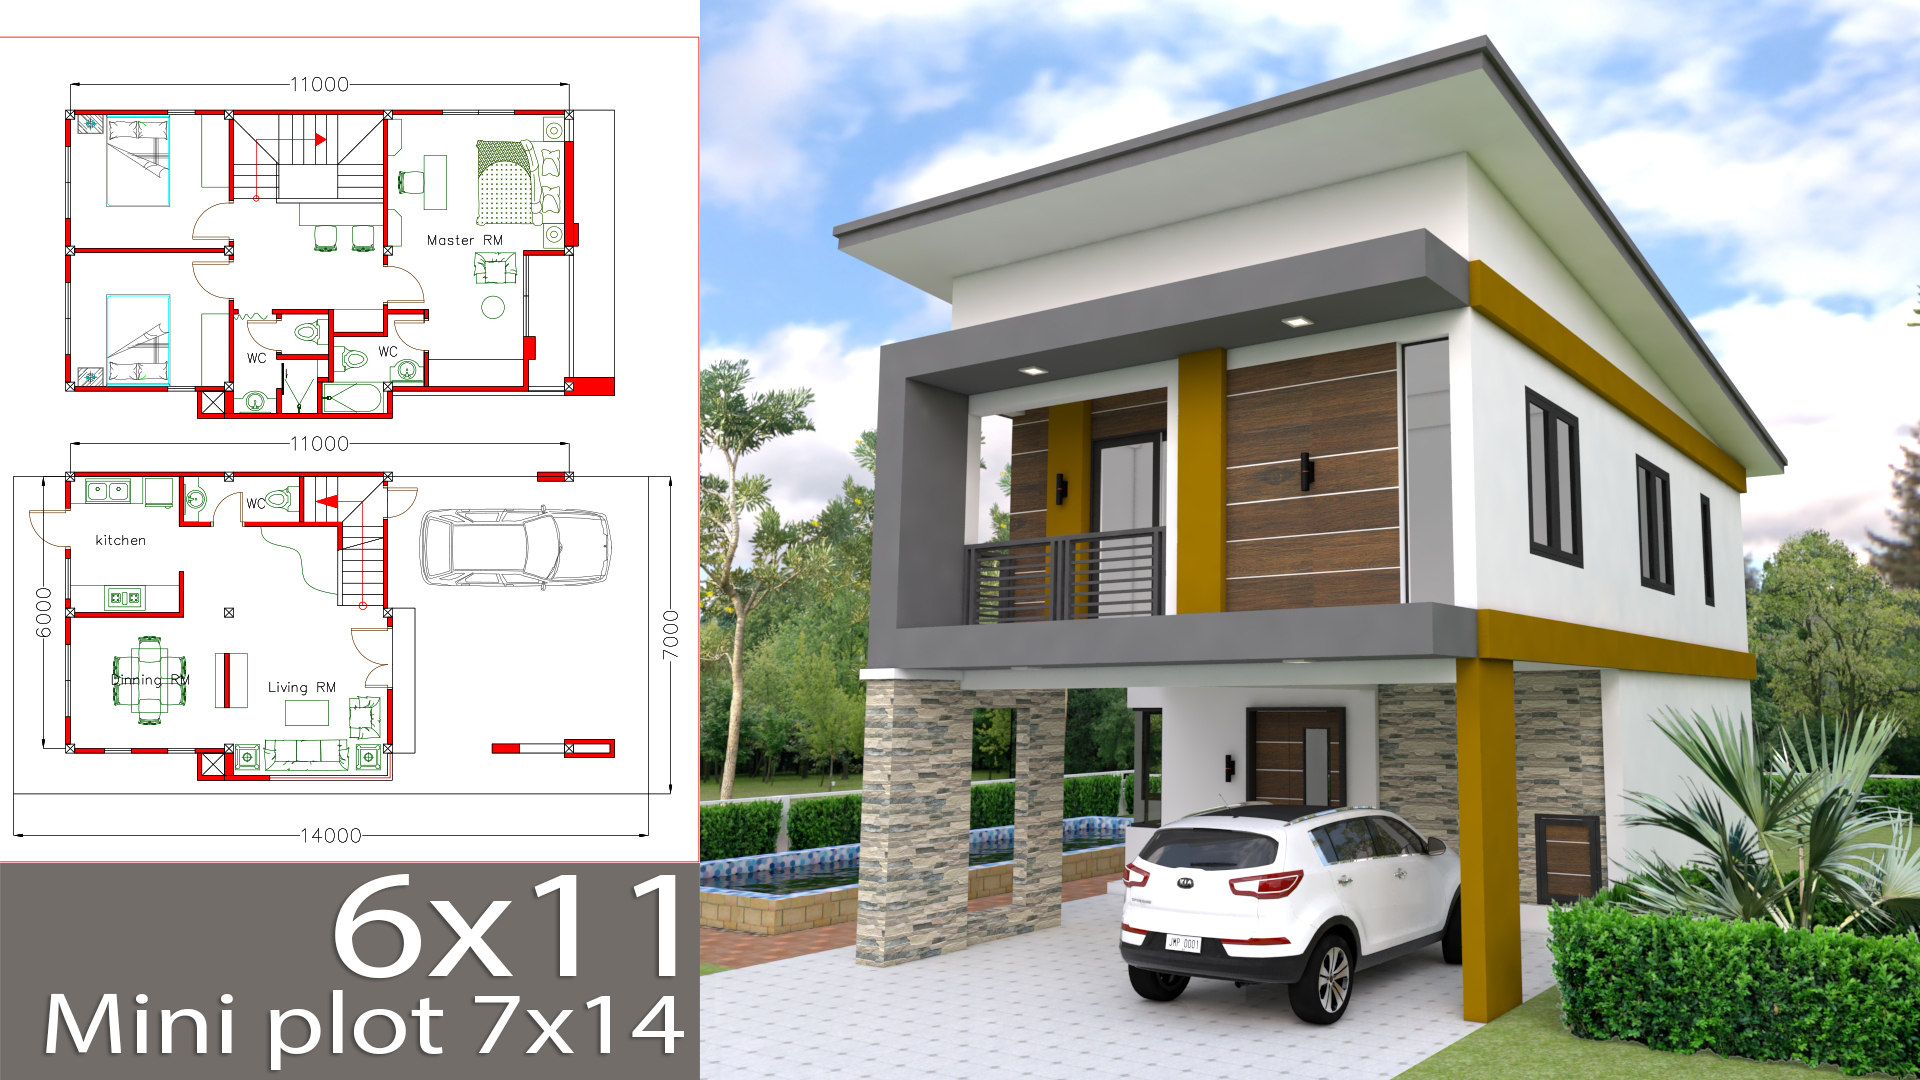 Small Home Design Plan 6x11m with 3 Bedrooms - SamPhoas Plan